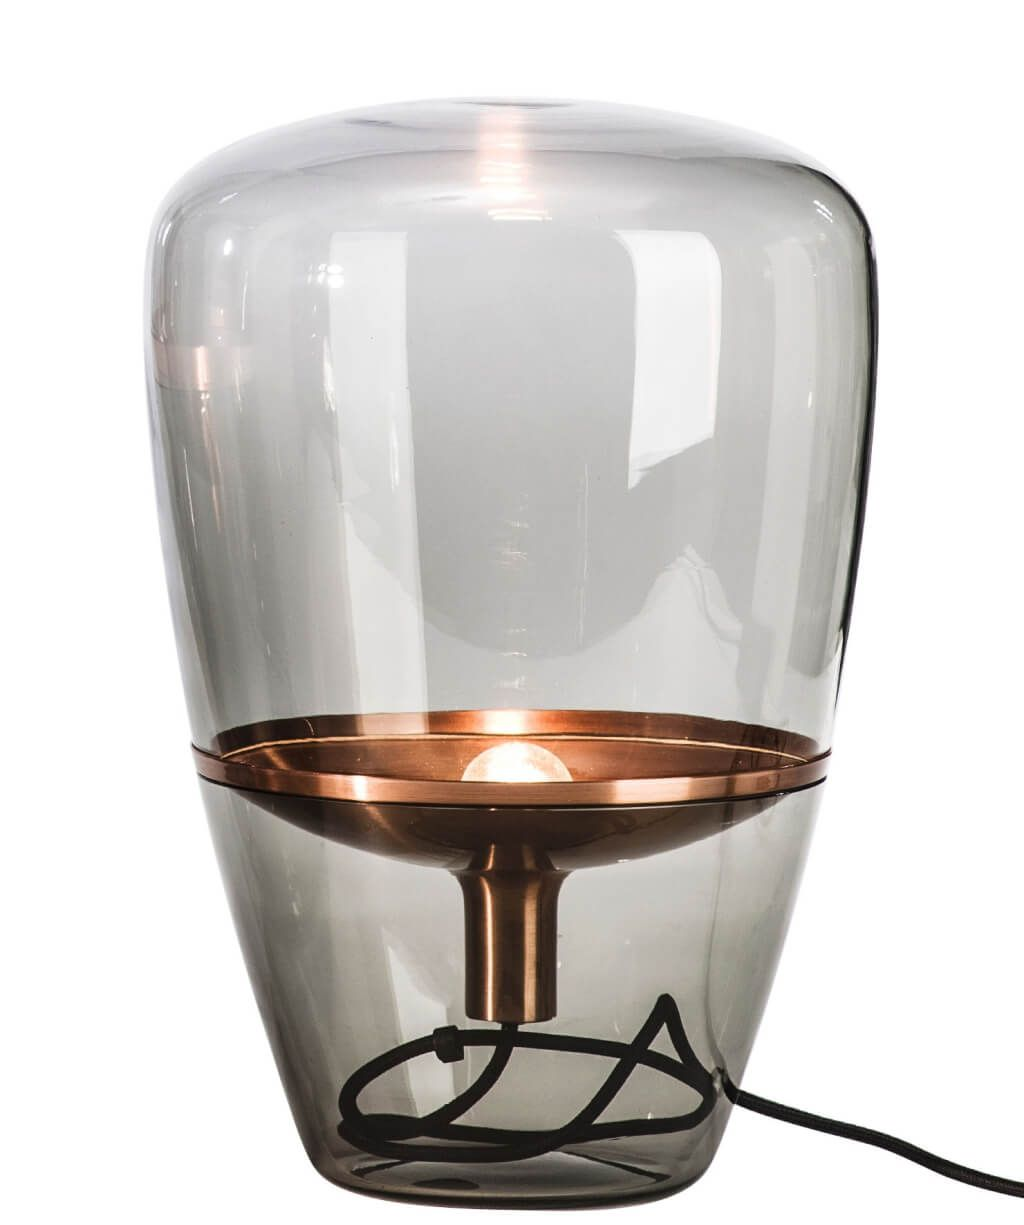 lighting rustic clear glass small table lamp design with inner floating copper fitting top lamps decorative accent sliding barn door wood metal coffee pearl drum stool legs teak